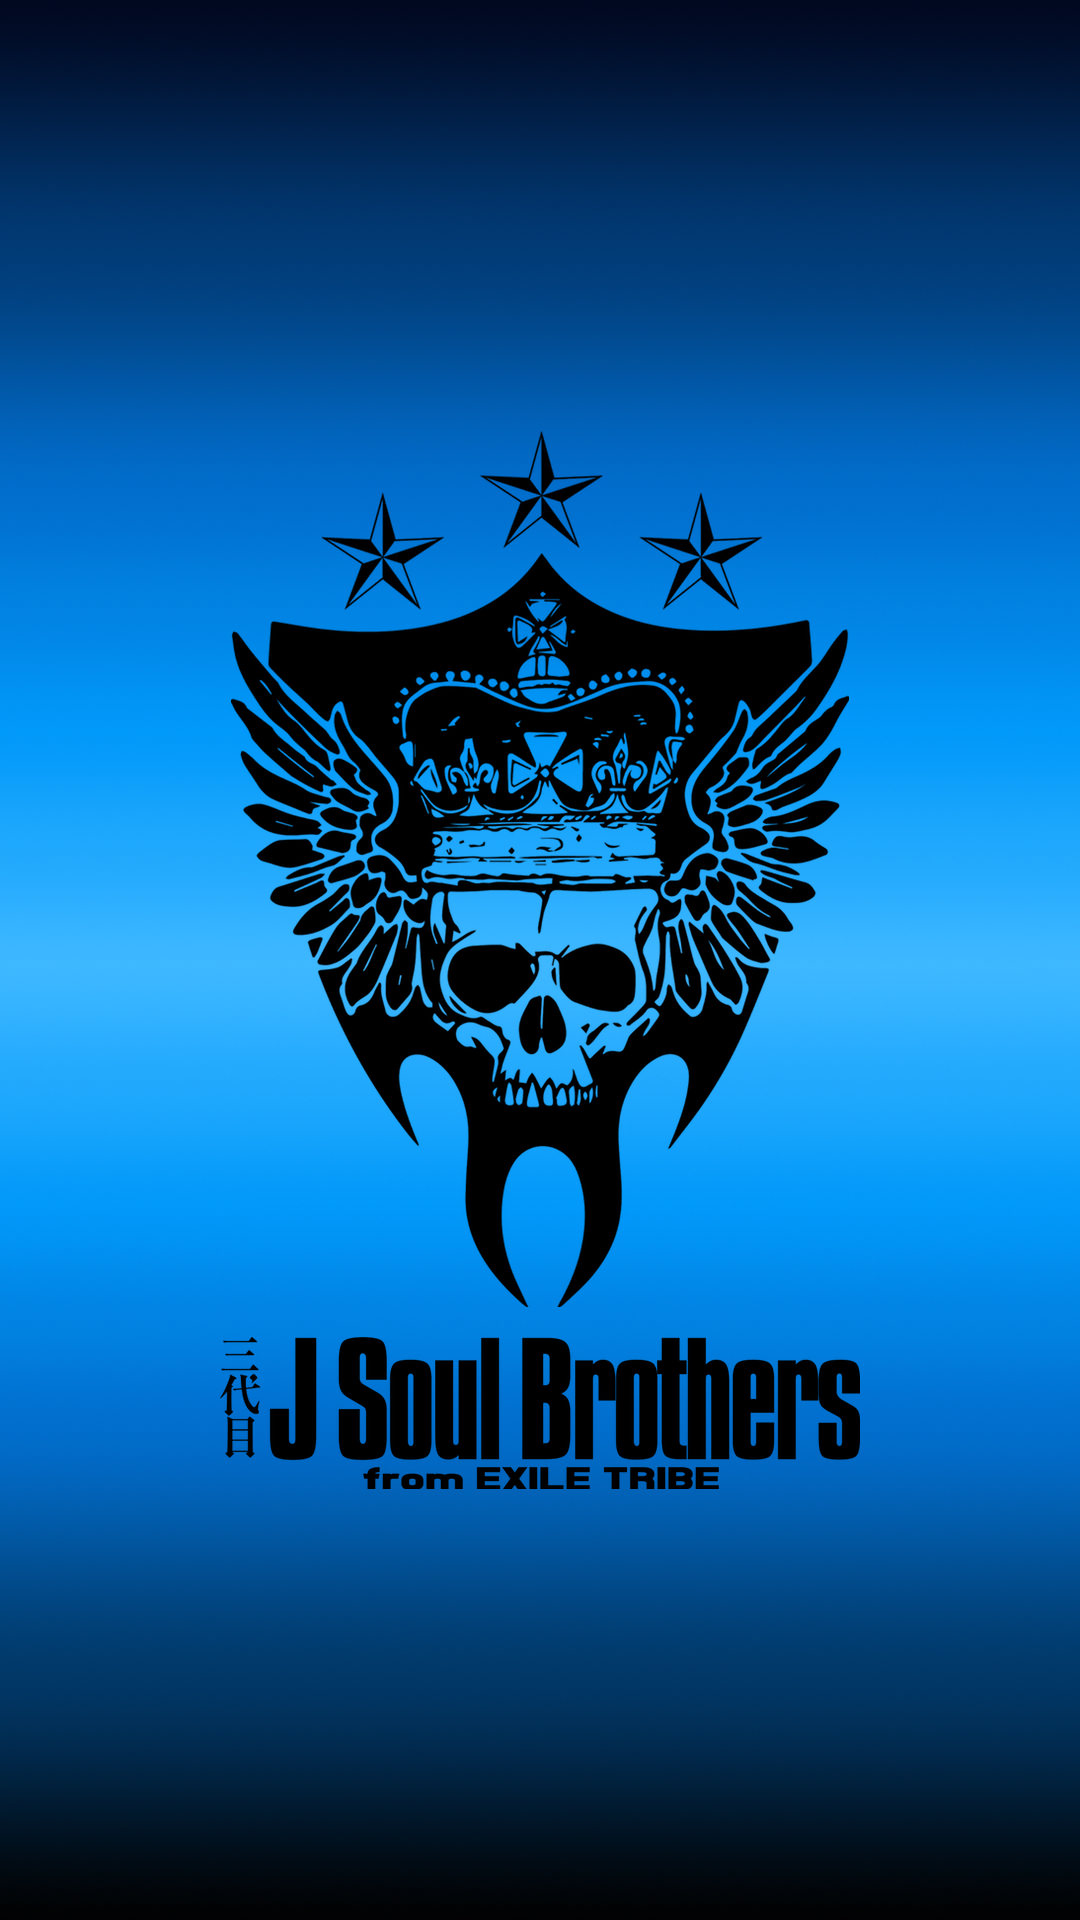 3jsb i13 - 三代目 J SOUL BROTHERSの高画質スマホ壁紙40枚 [iPhone&Androidに対応]